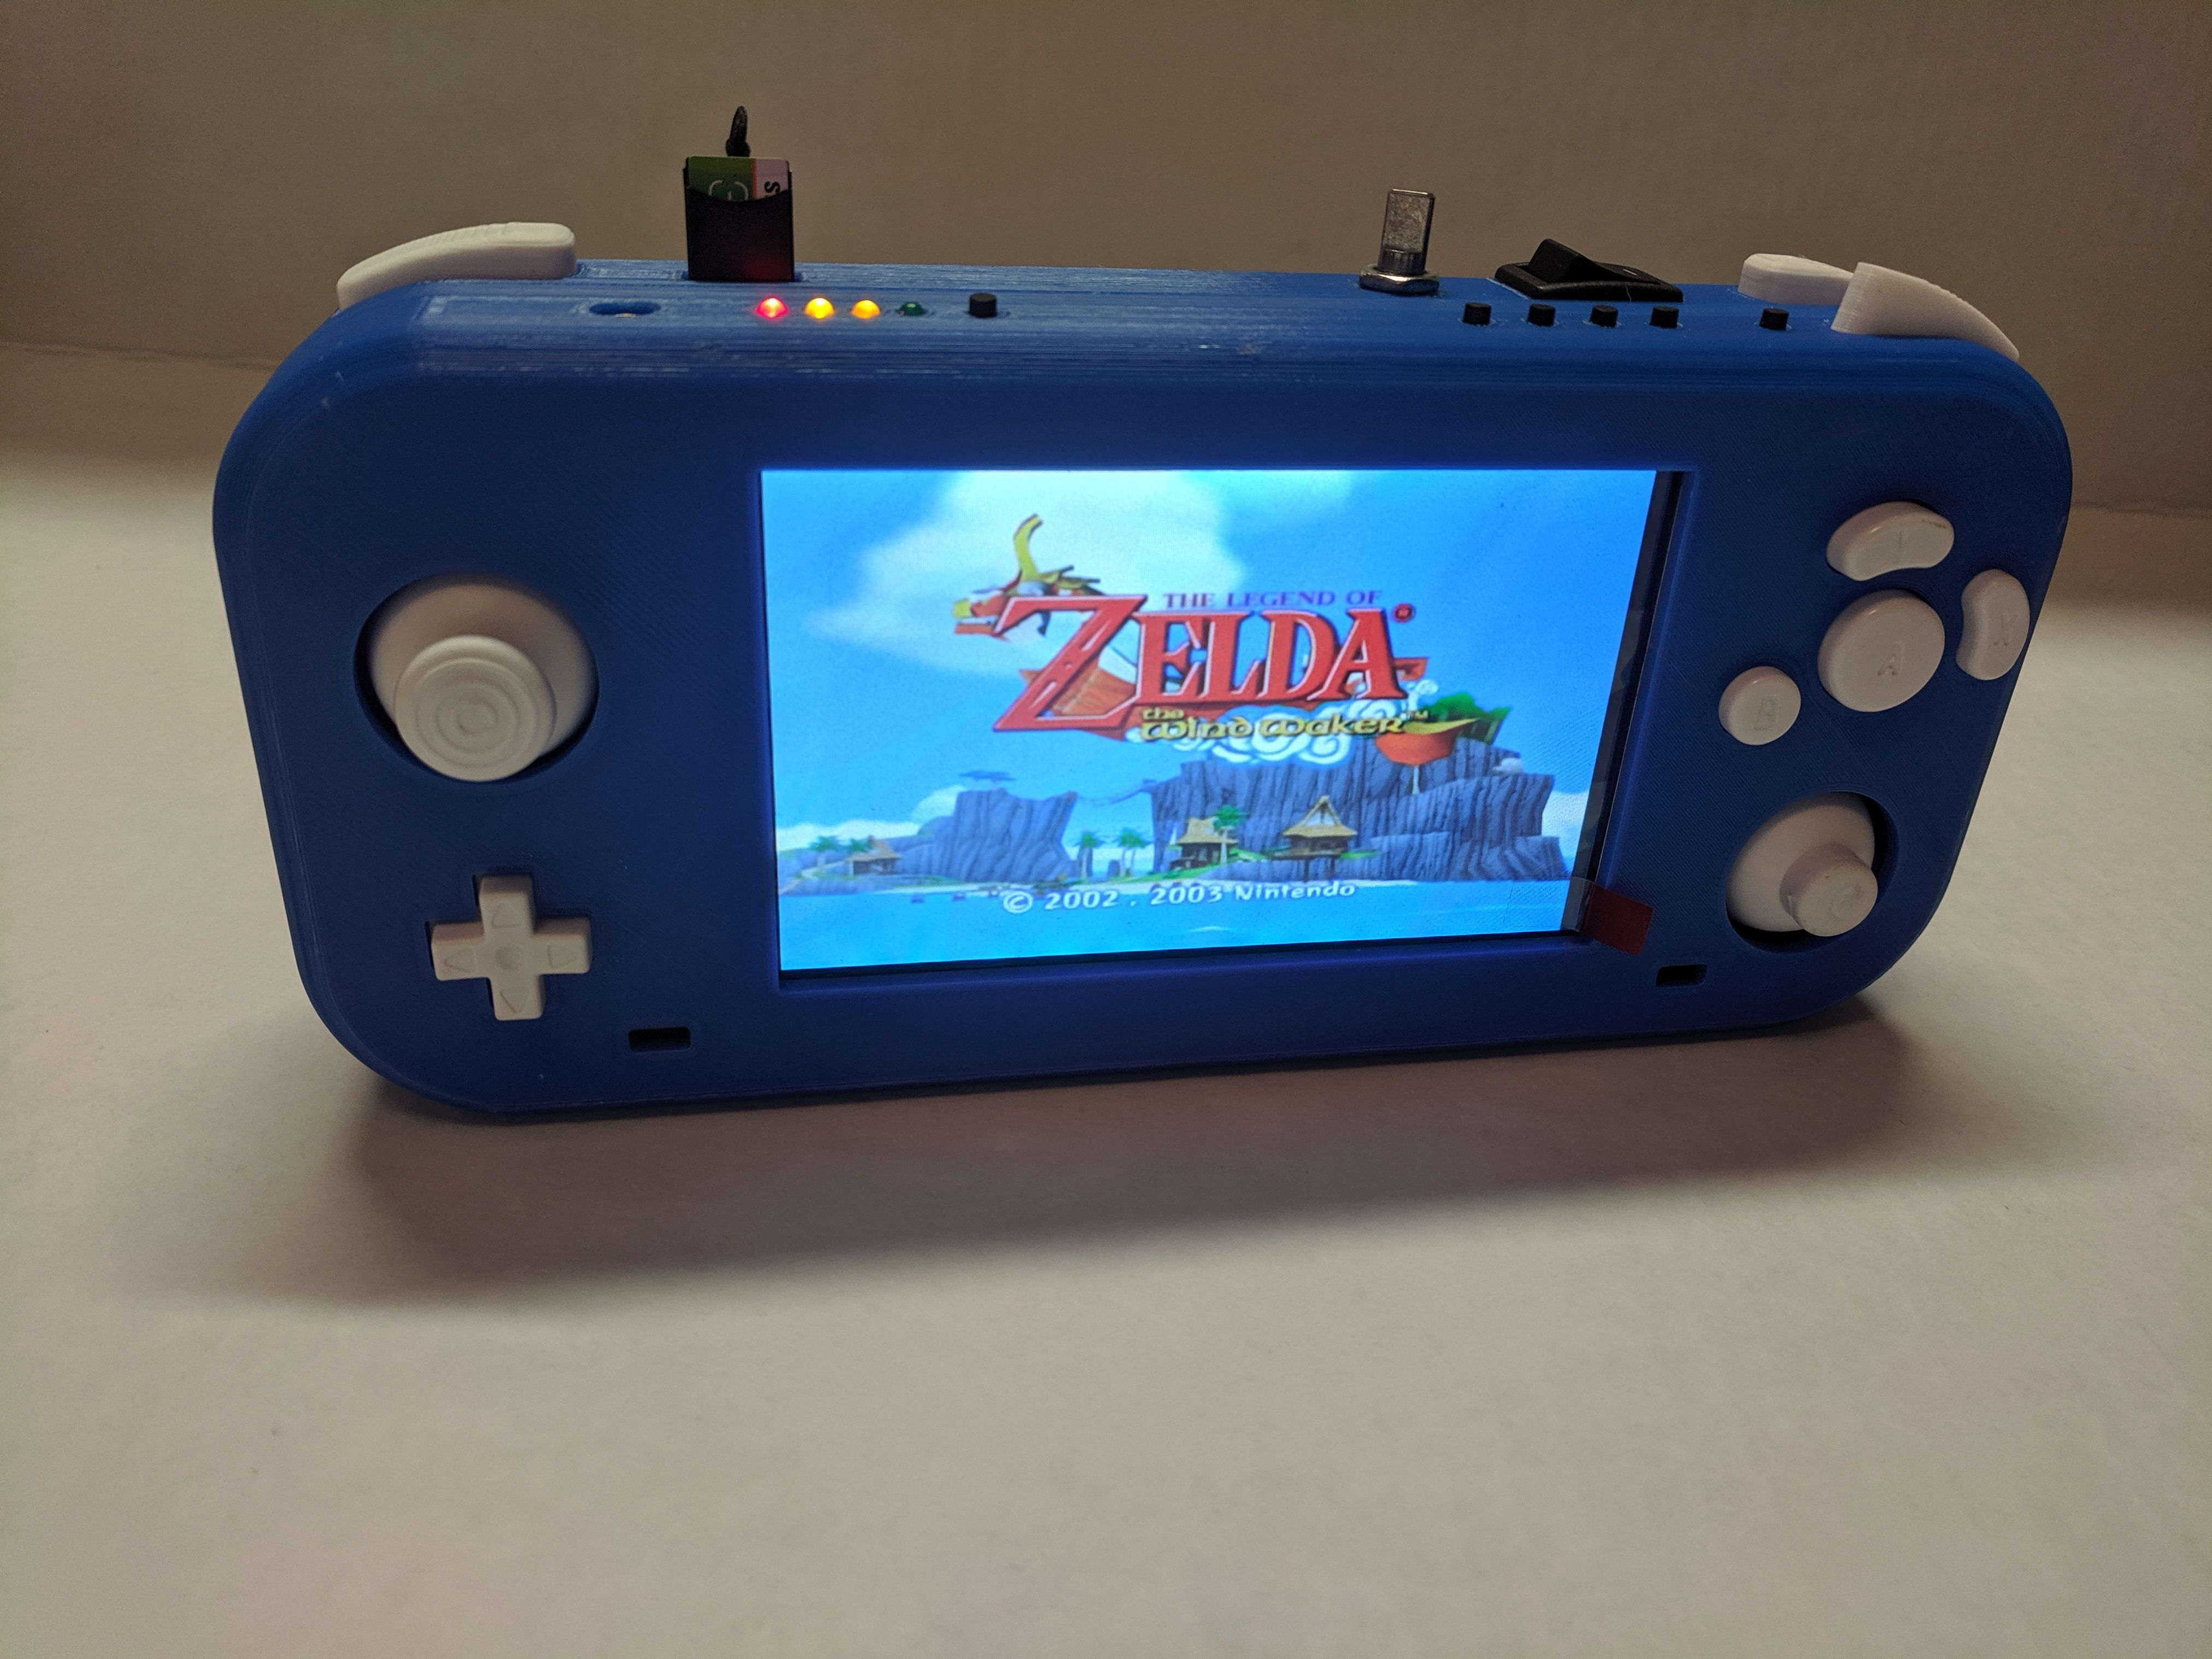 Custom Wii Portable for sale on Etsy. Plays Wii, Gamecube